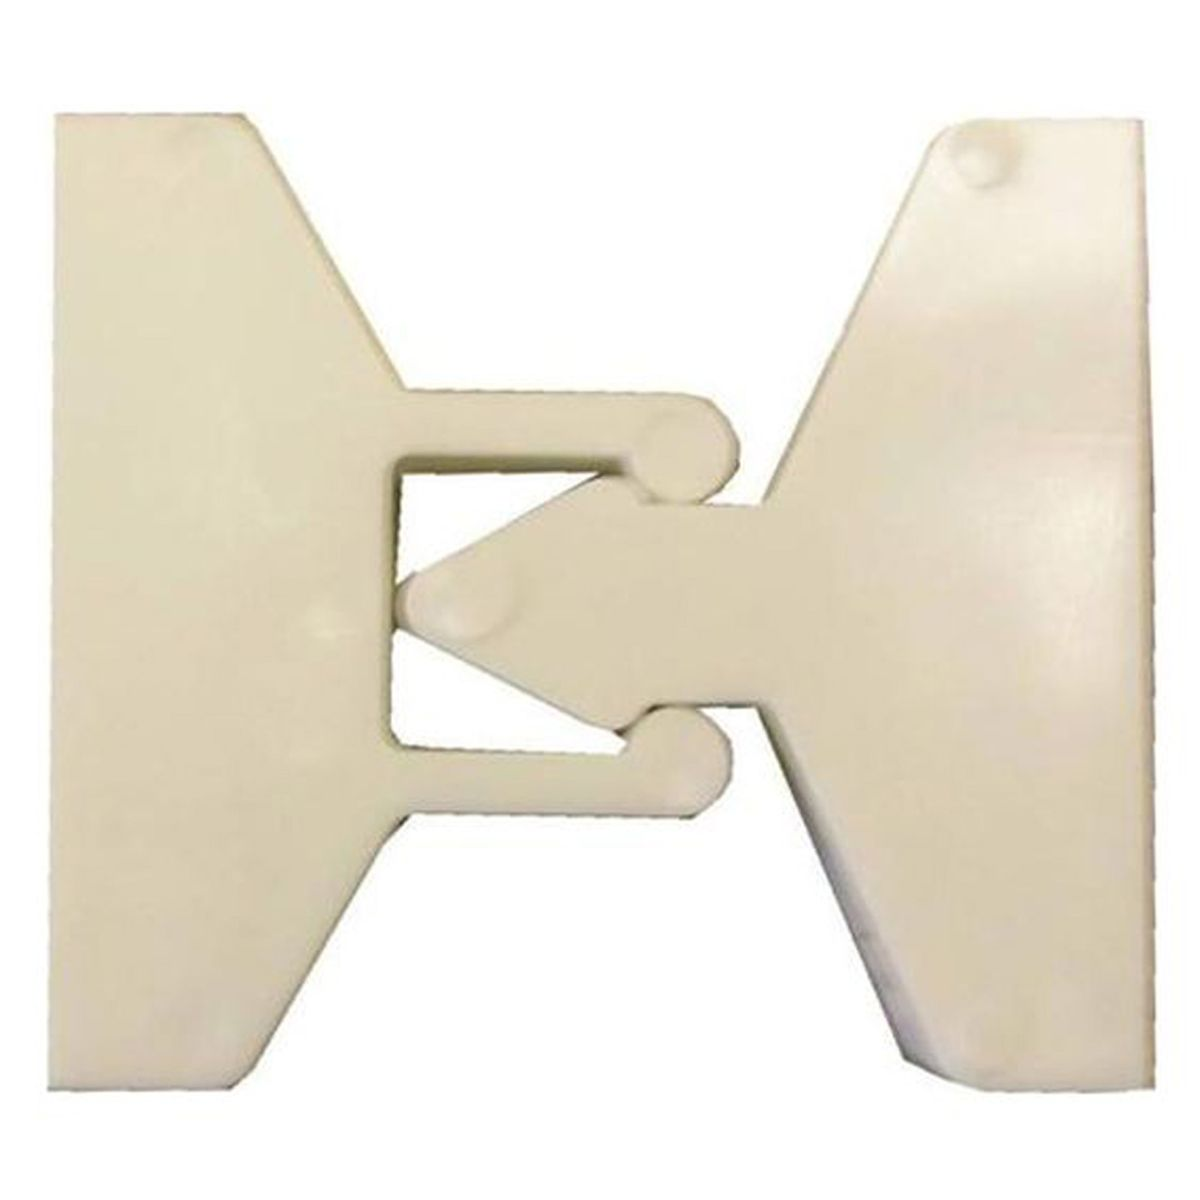 Abi Type Plastic Door Retainer